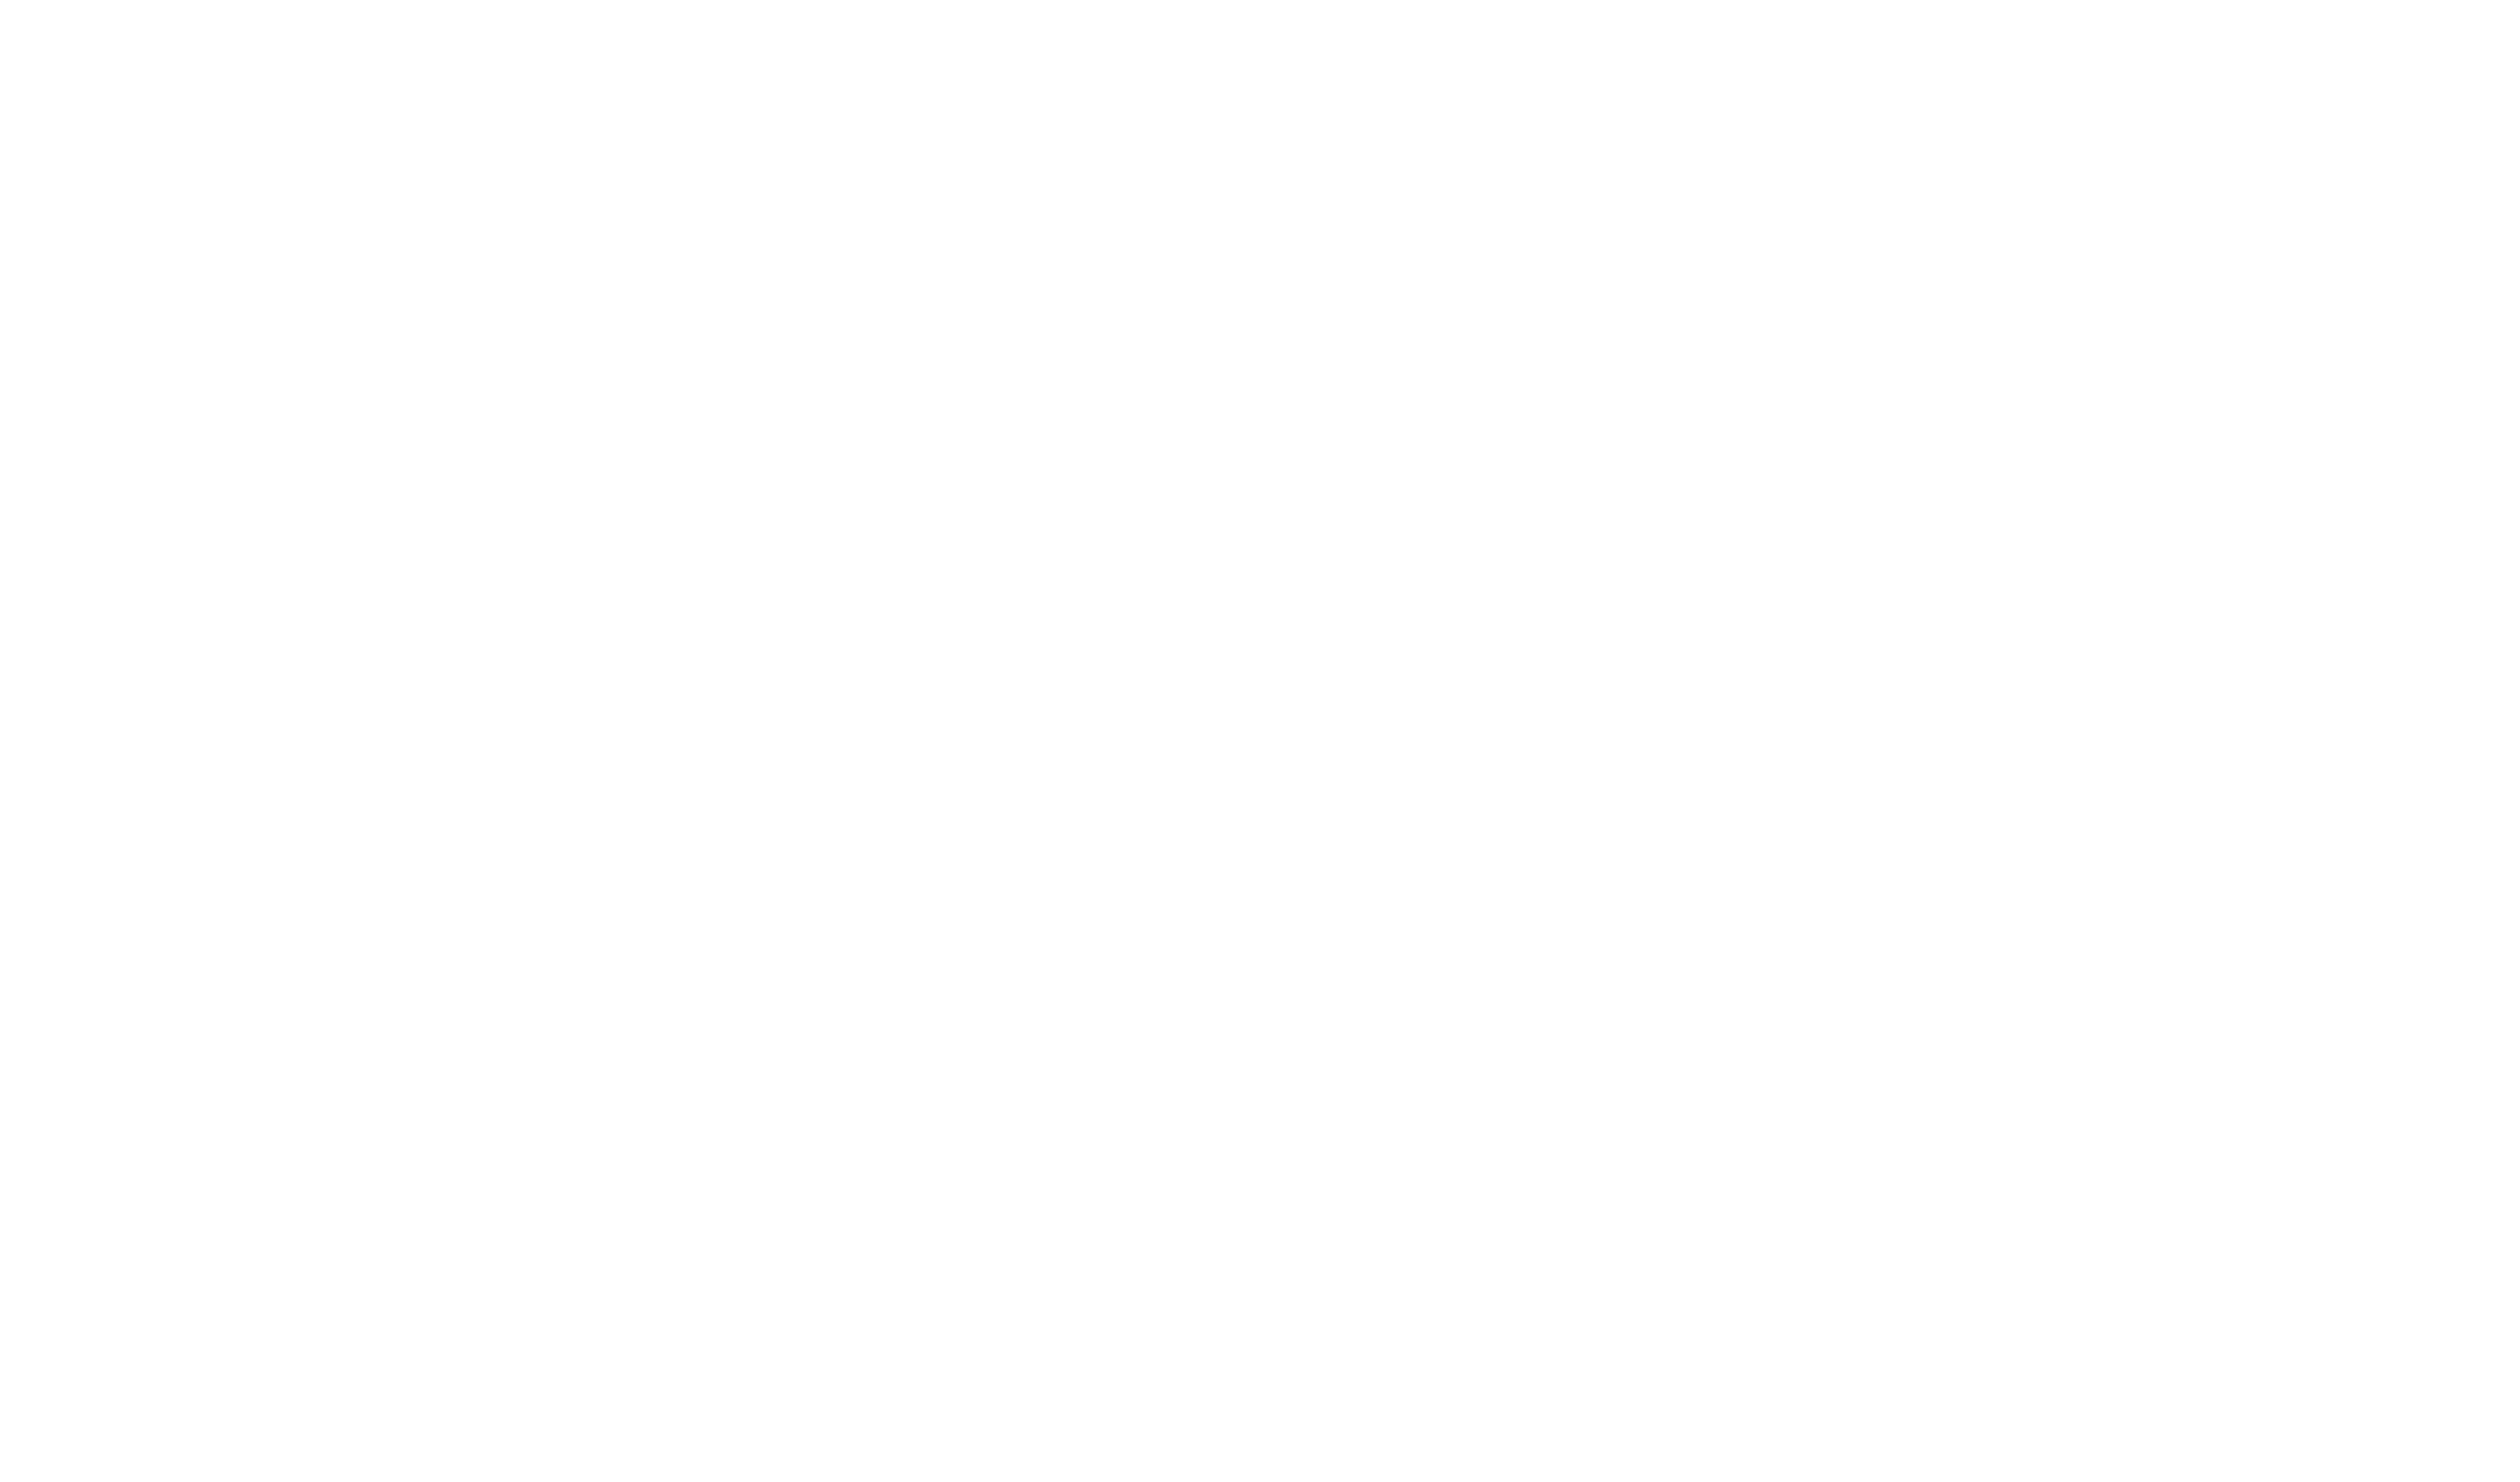 Big Dreams are Welcome at Cleveland State University